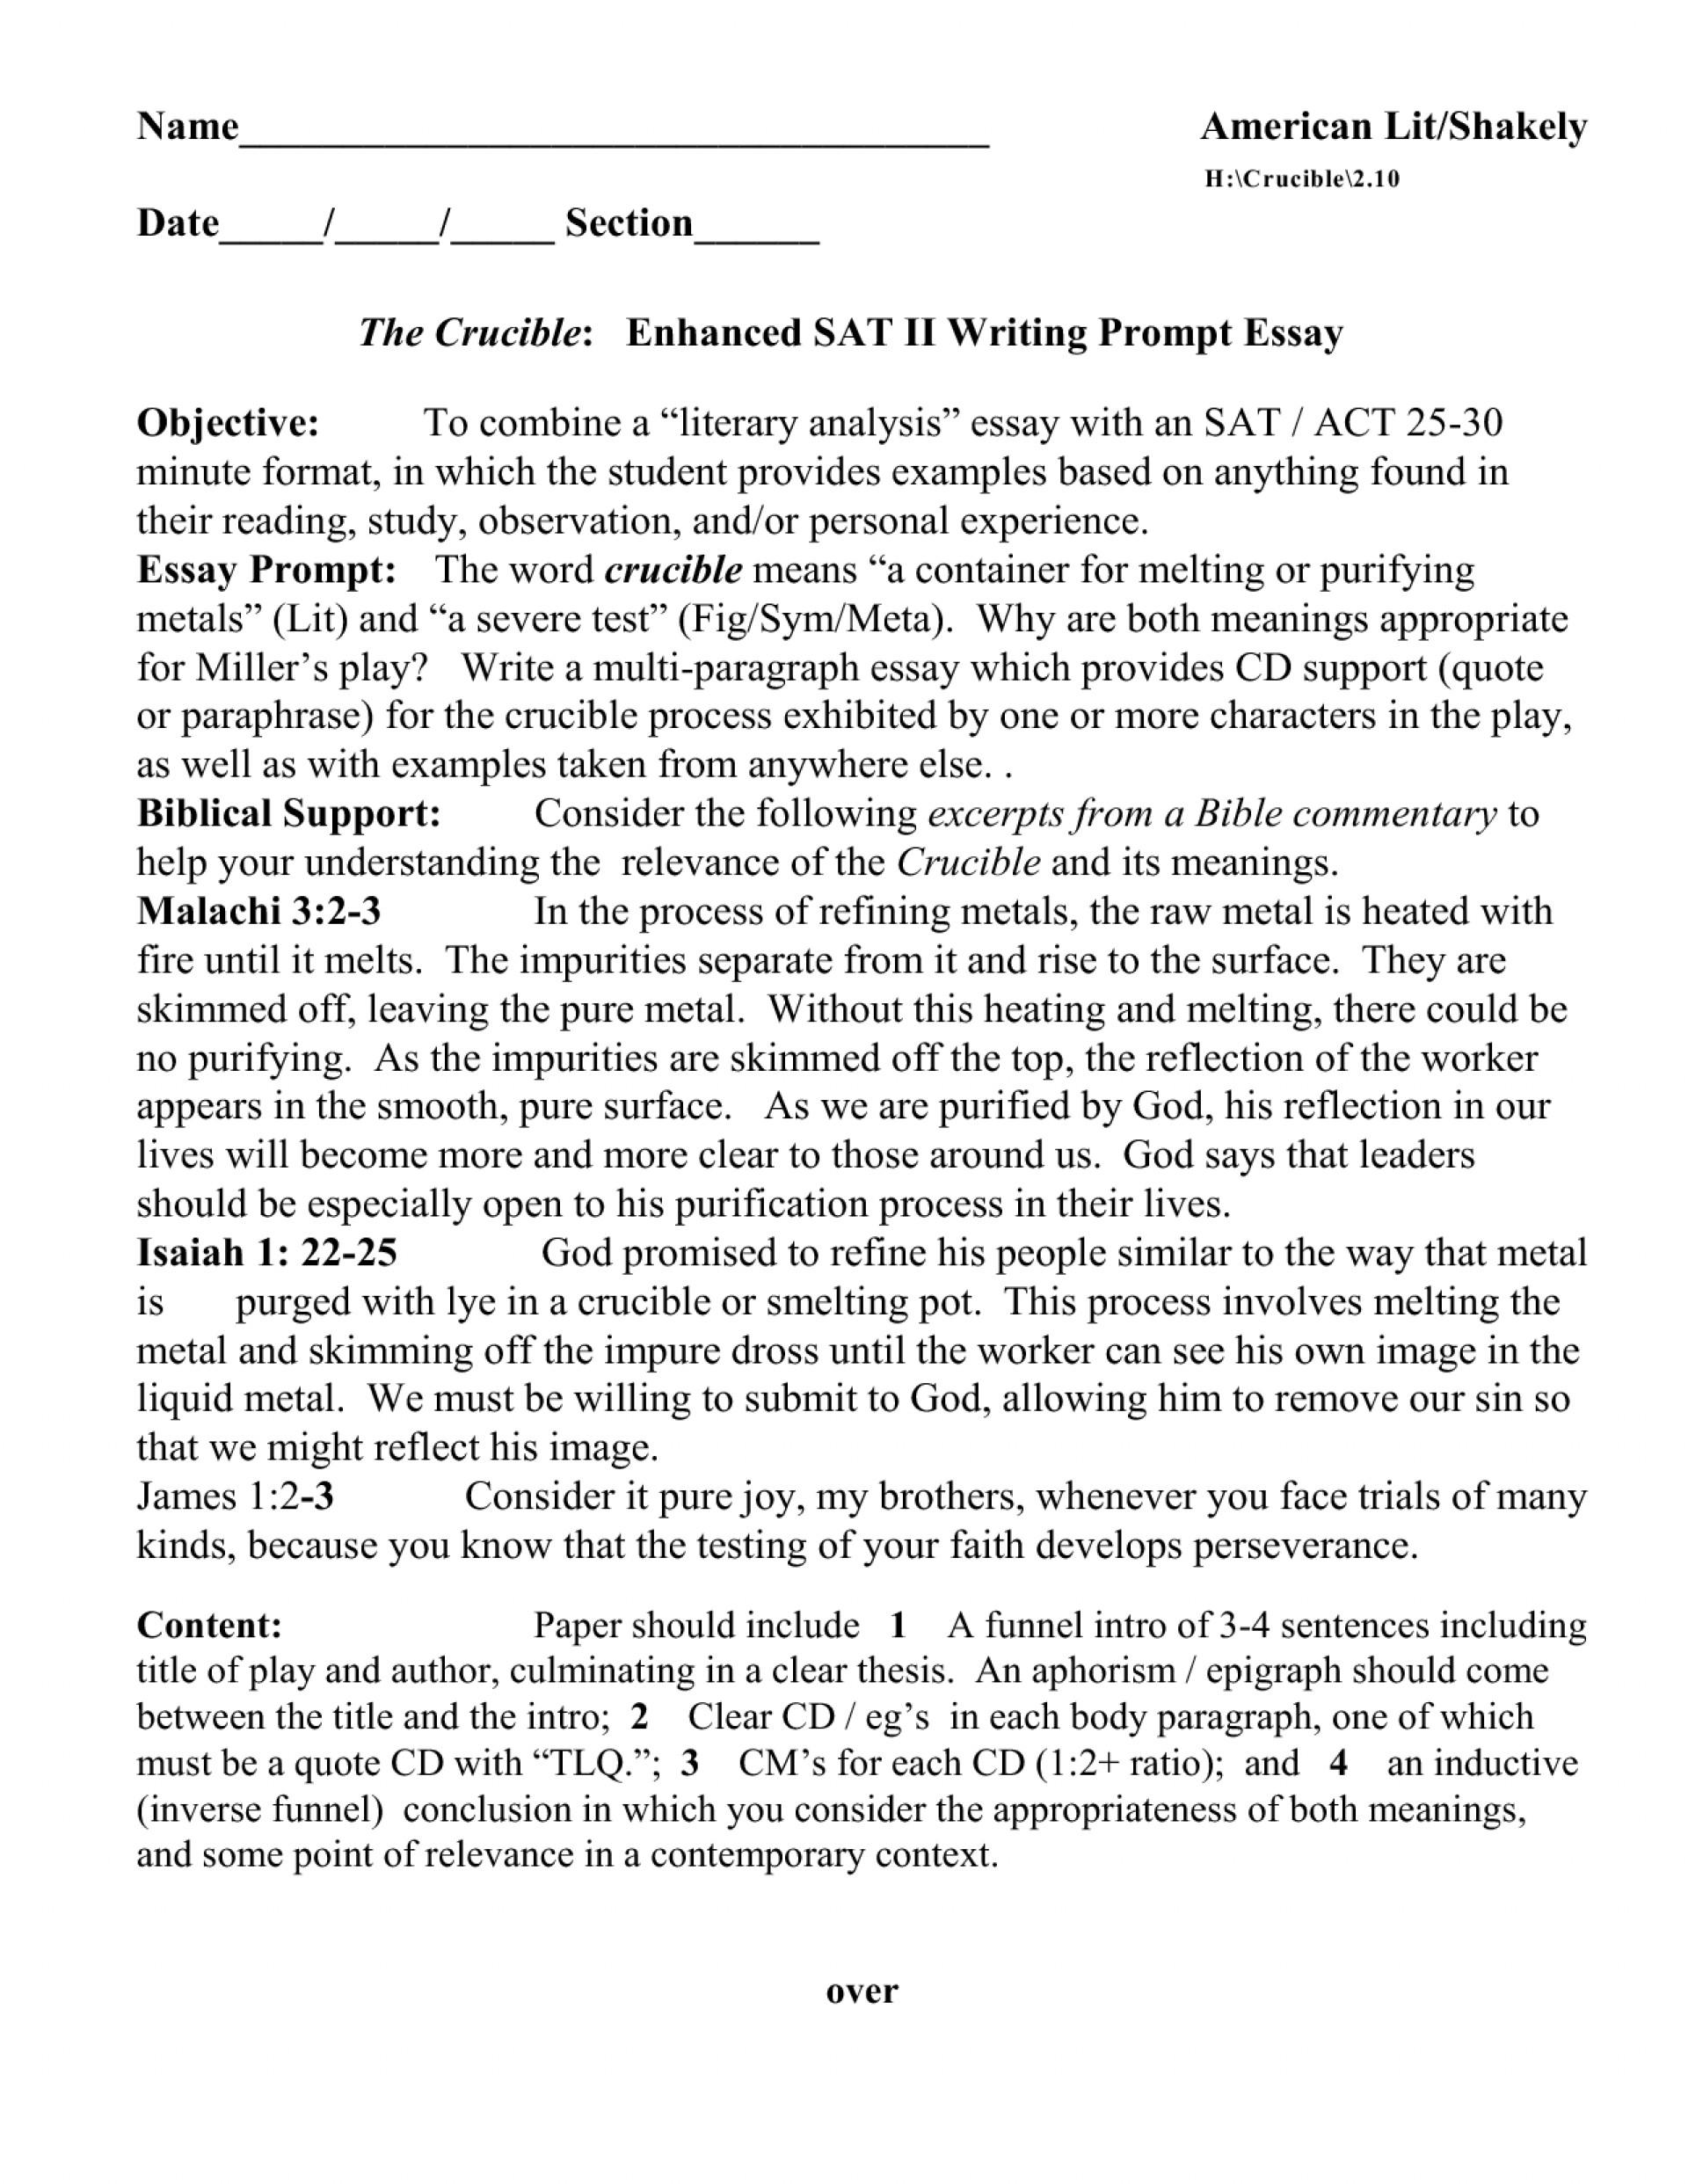 006 Sat Essays Quotes Quotesgram Is There An On The L Singular Essay Examples Writing Strategies Pdf 888 2018 1920